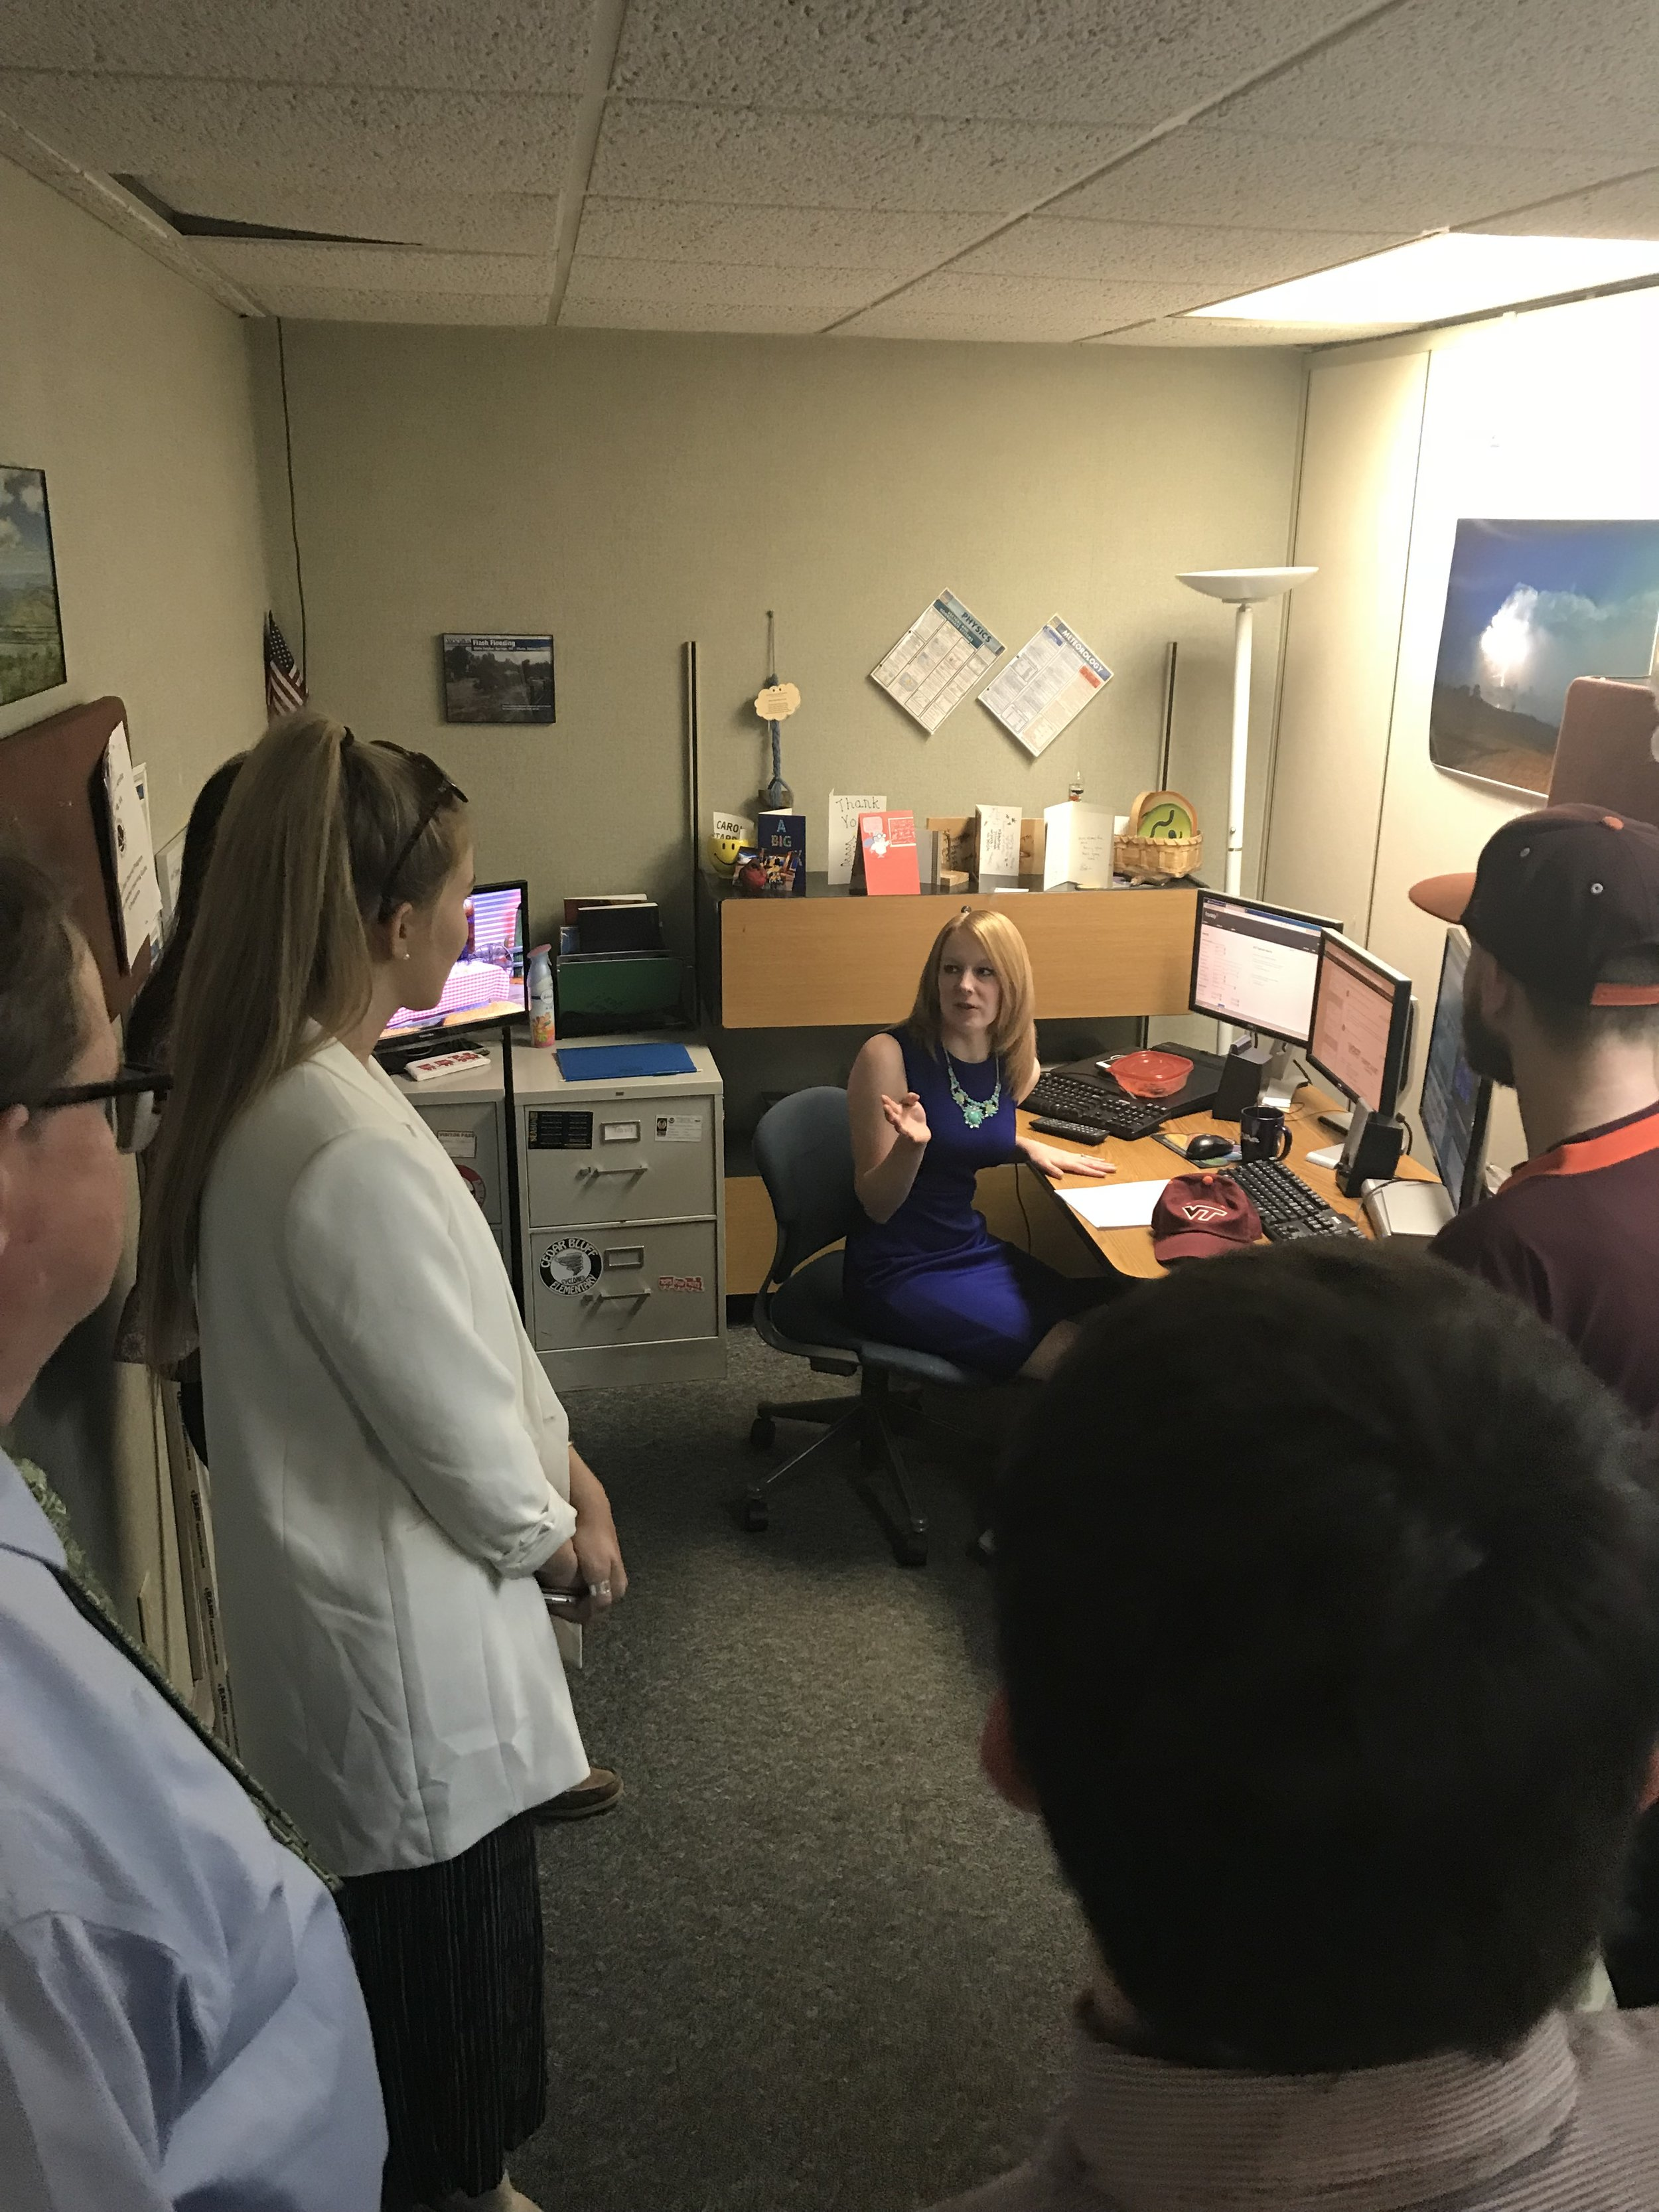 Virginia Tech students visit with WVVA-TV meteorologist Katherine Thompson on the group's recent visit to WVVA-TV. Katherine is a 2014 N.C. State graduate who,in addition to her degree in meteorology, also holds a B.A. degree in History. She provided terrific insight for our group.